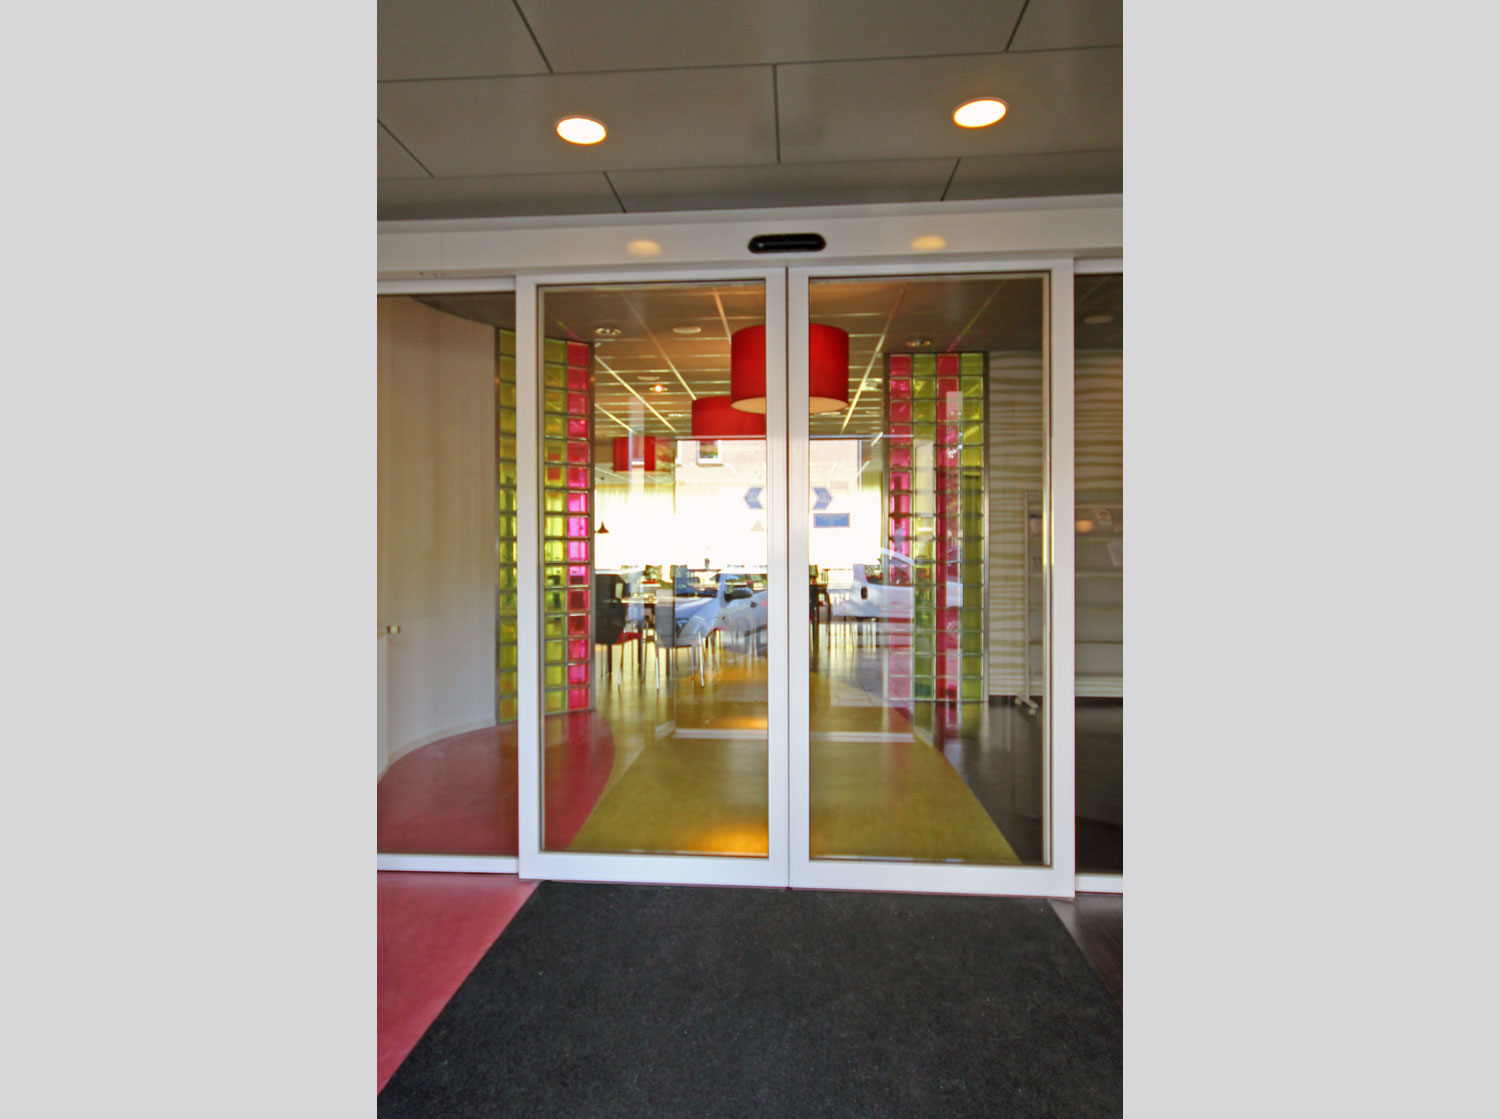 SSC 't Poelhuys te Lisse